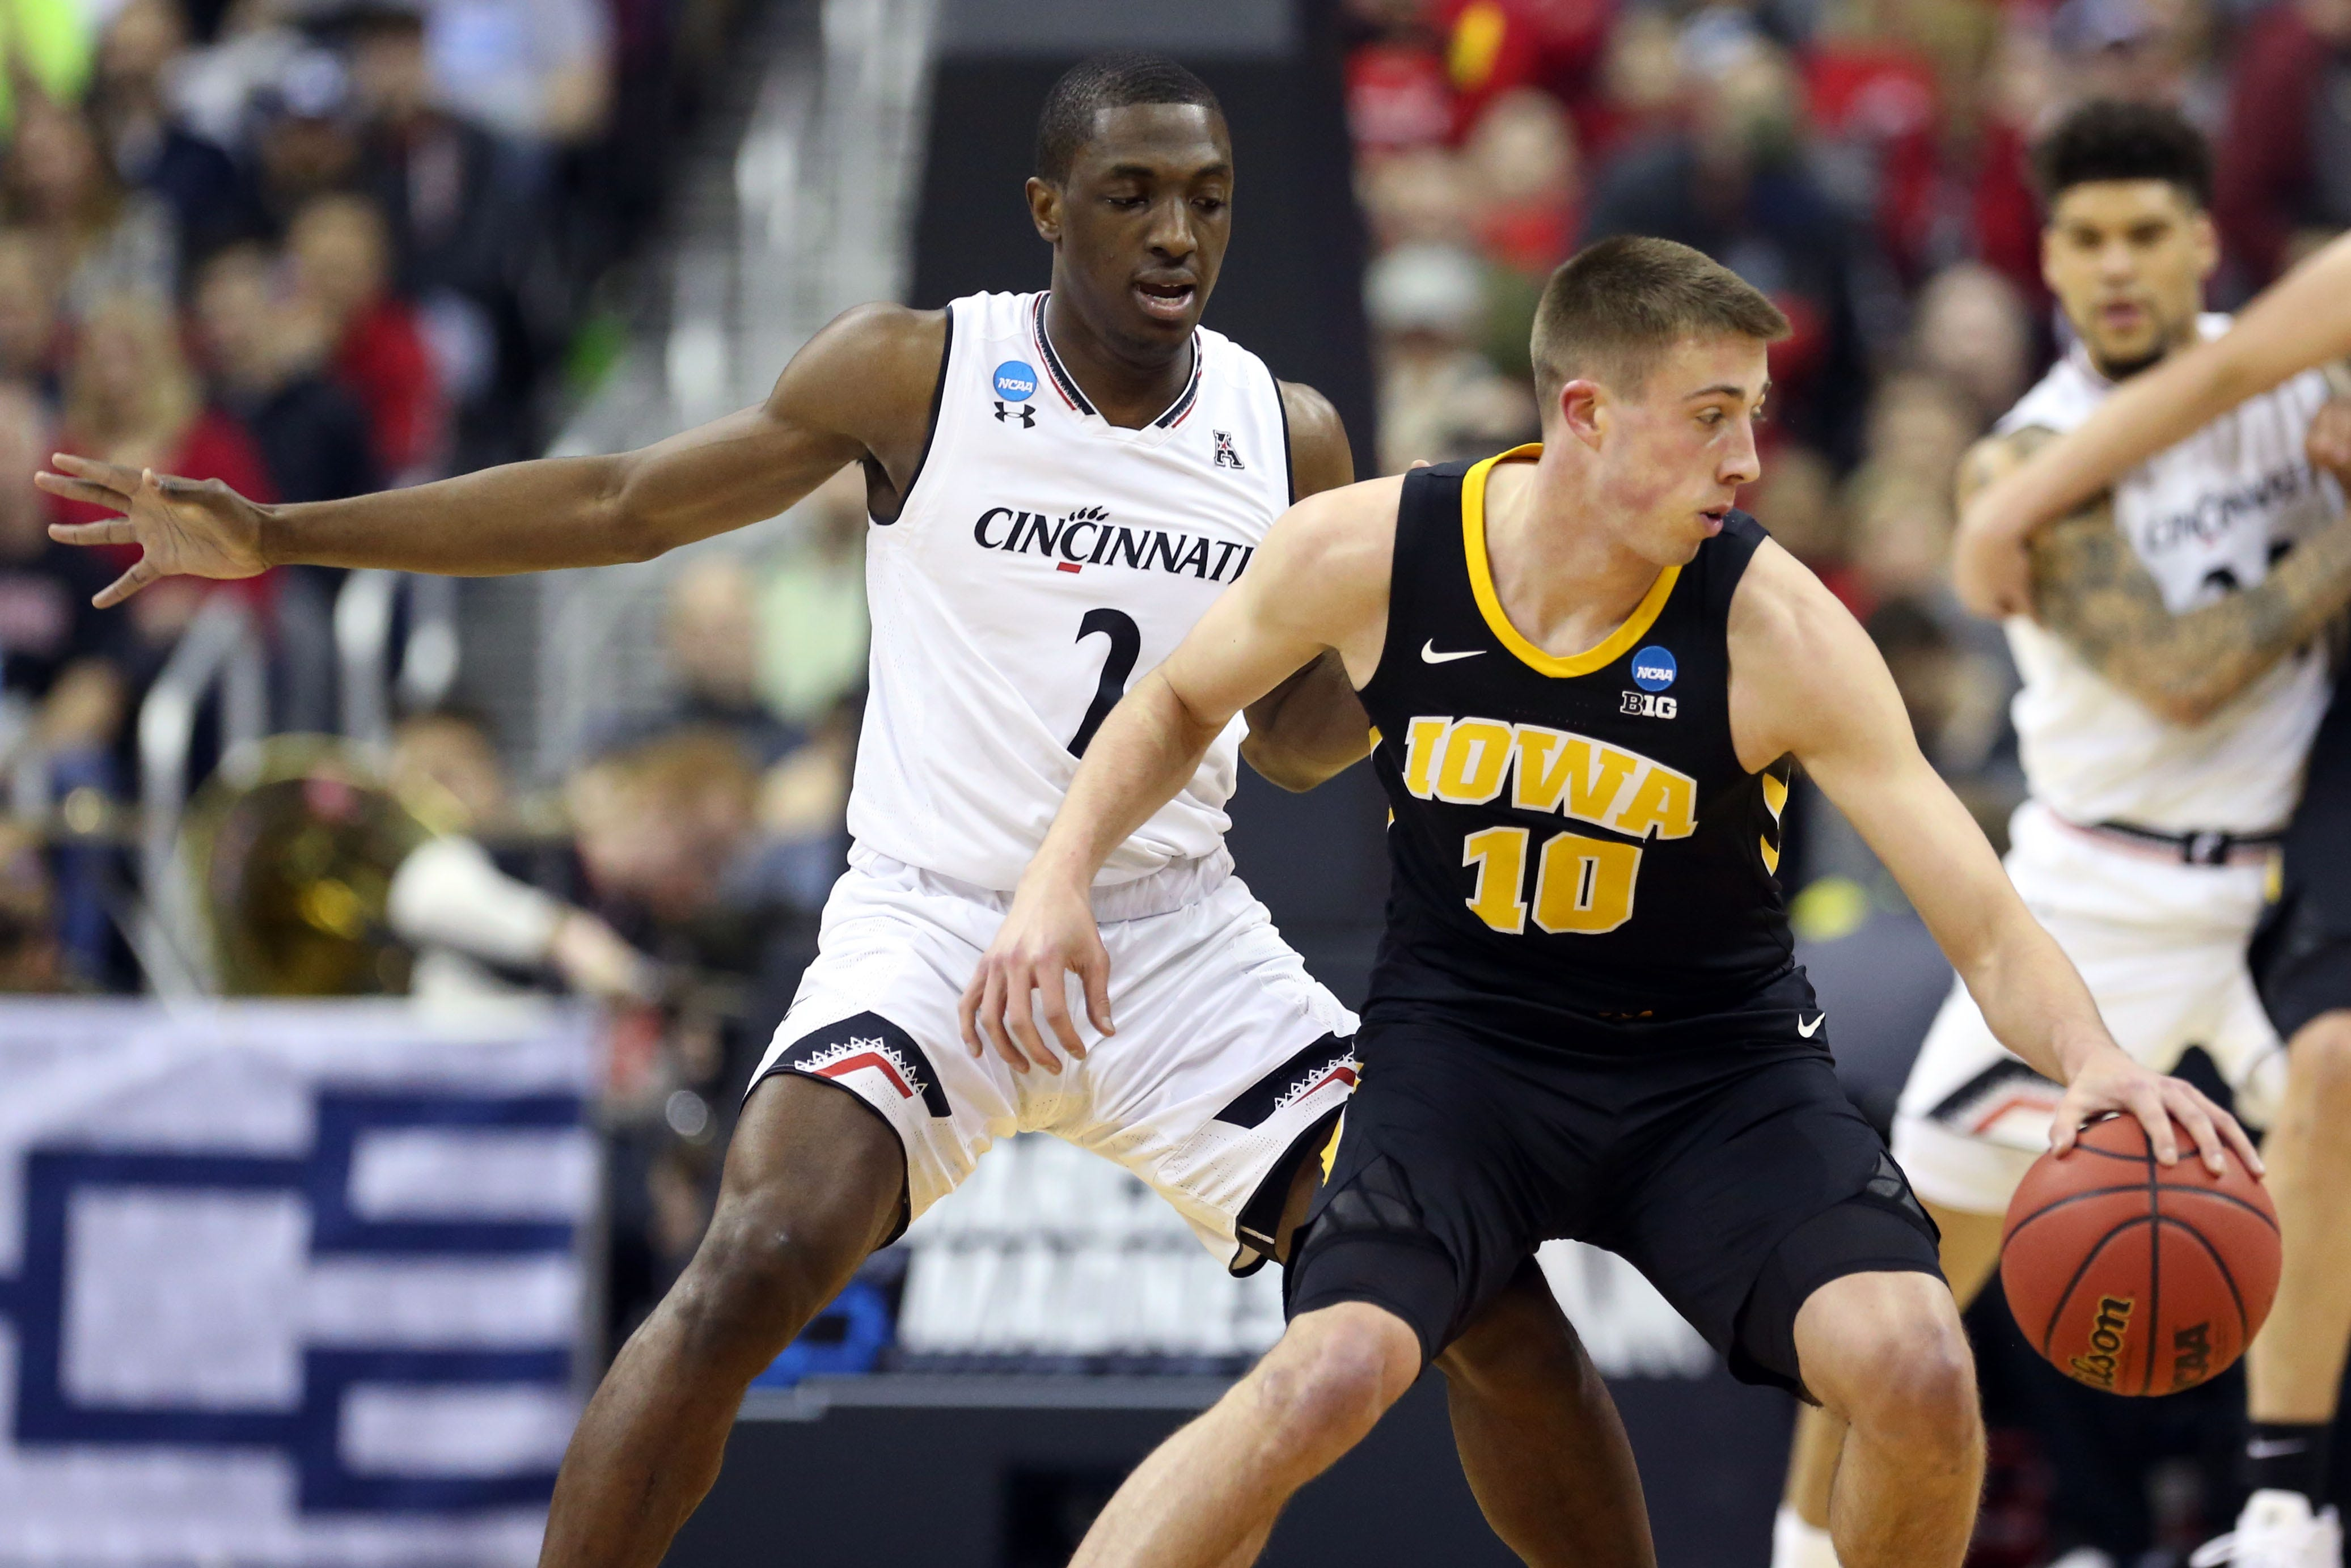 Iowa guard Joe Wieskamp is defended by Cincinnati guard Keith Williams during the first round of the 2019 NCAA tournament.